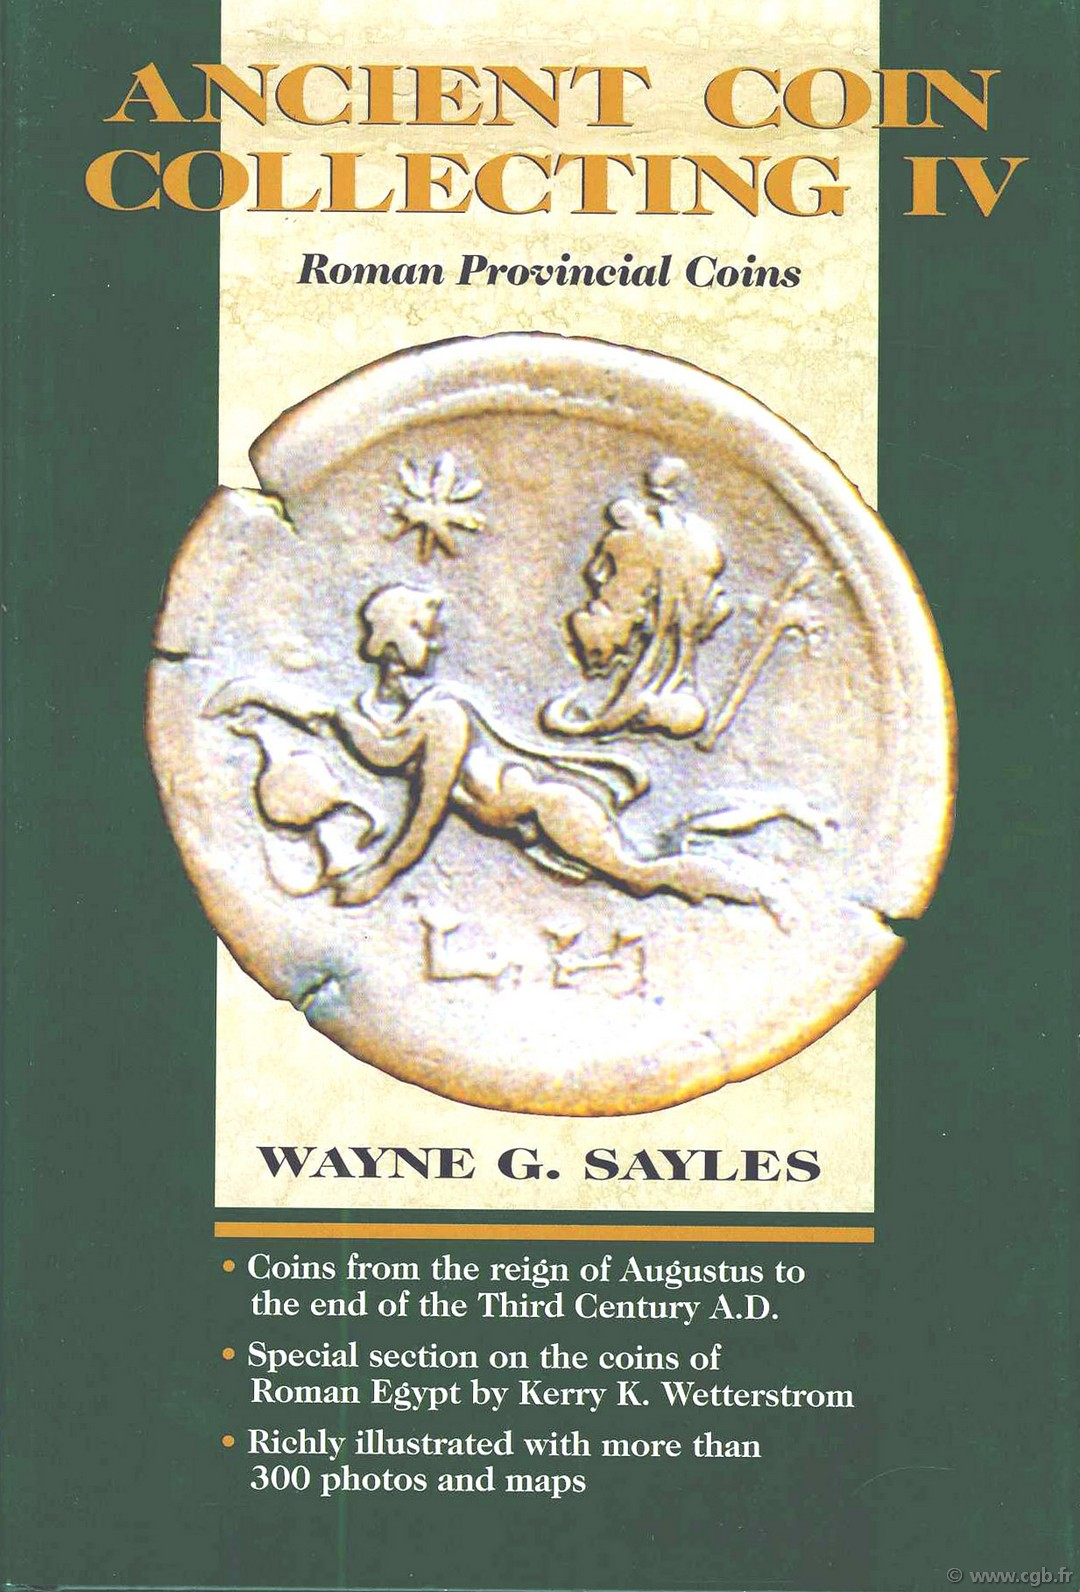 Ancient coin collecting IV, roman provincial coins SAYLES Wayne G.